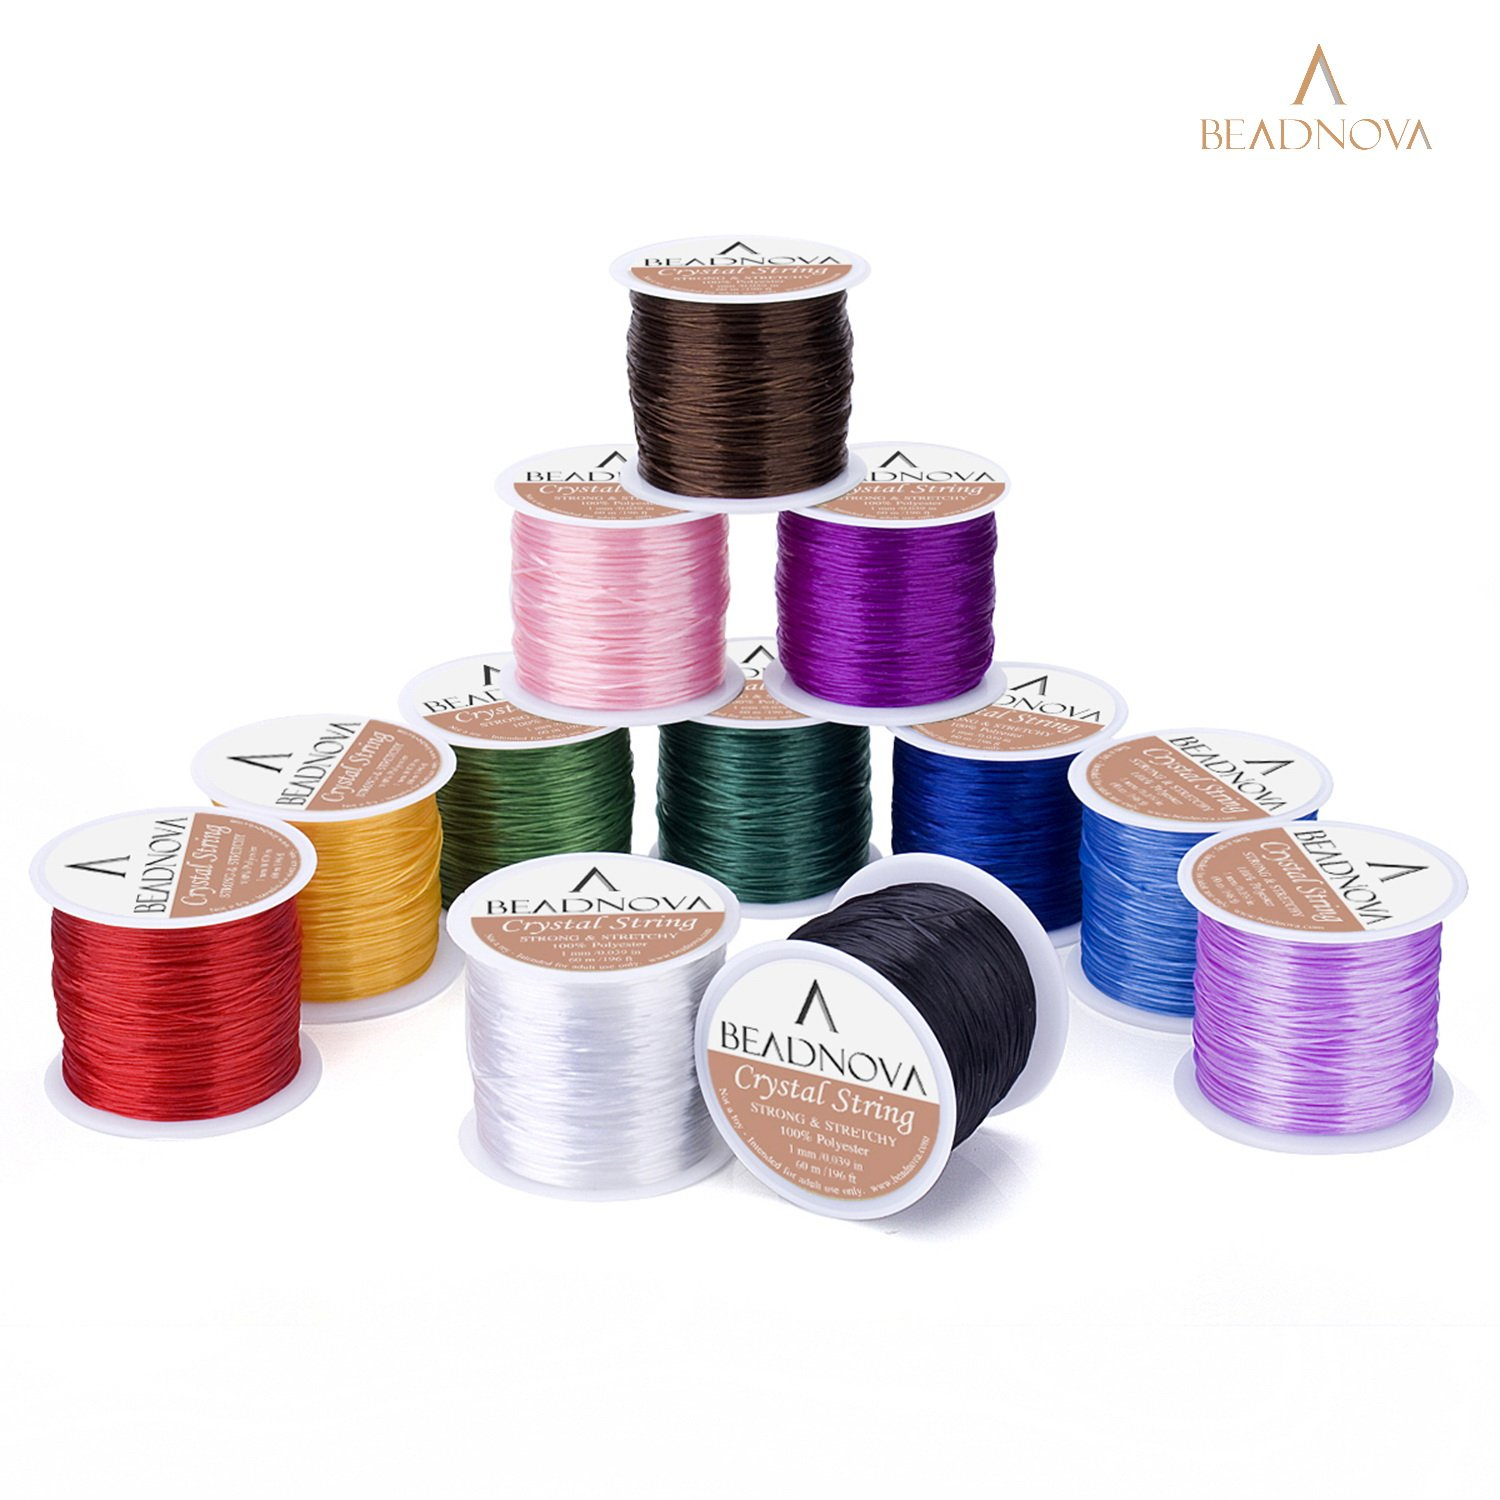 BEADNOVA-1mm Elastic Stretch Polyester Jewelry Bracelet Crystal String Cord 60m Roll (Clear White)